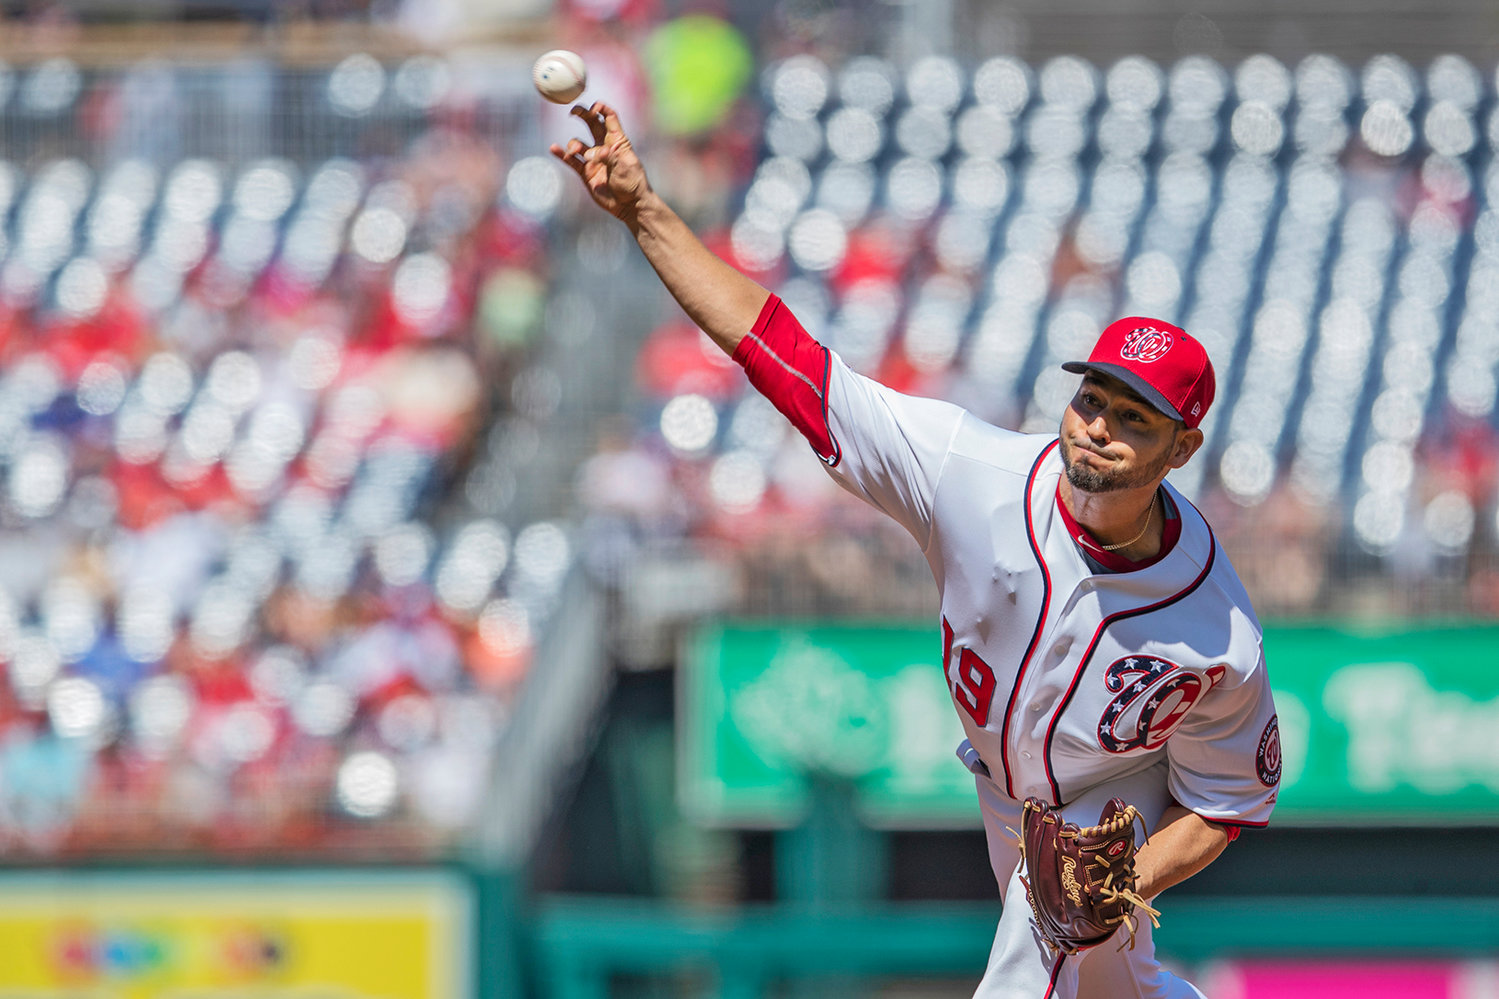 WASHINGTON NATIONALS' starting pitcher Anibal Sanchez (19) throws a pitch during the first inning of Sunday's game against the Atlanta Braves in Washington.